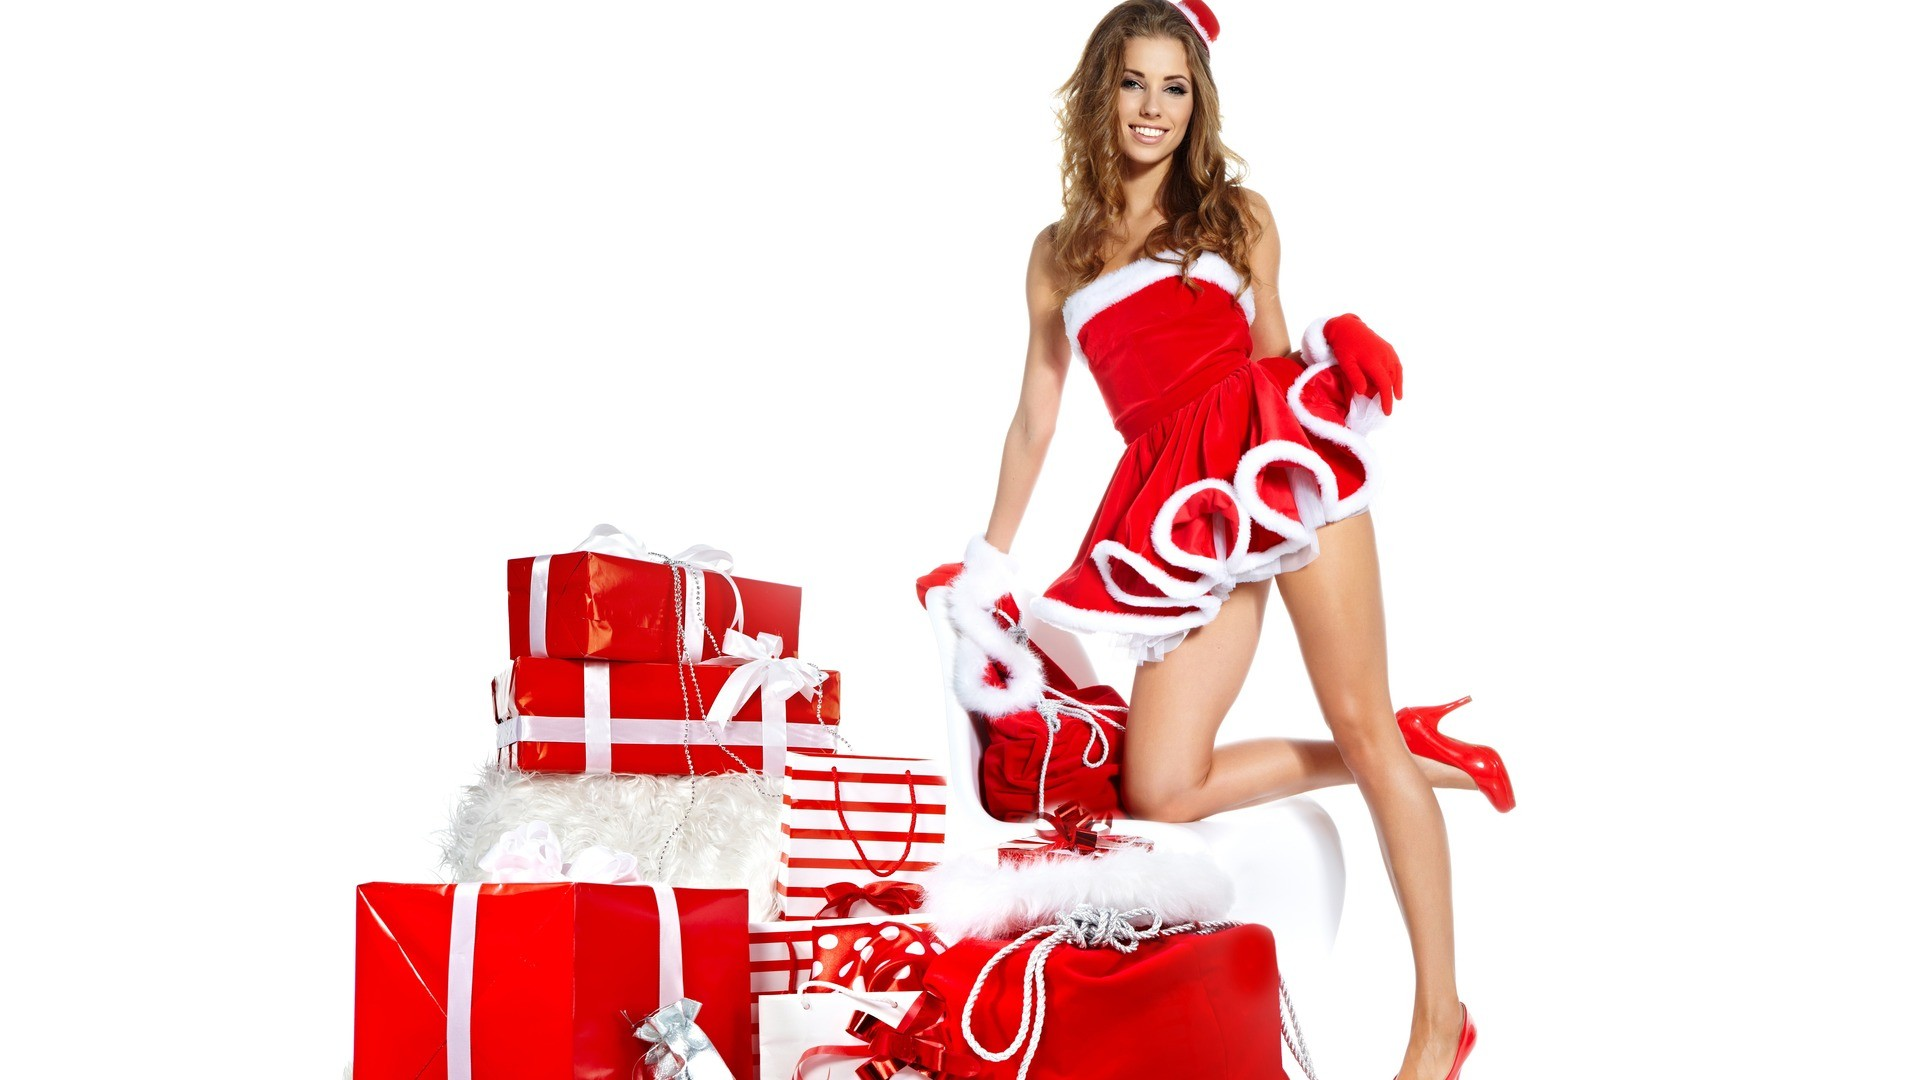 1920x1080 Share best and famous Gifts For Christmas and decoration ideas to our  friends and love once. Find Gifts For Christmas ideas 2014 on Christmas  Idol.